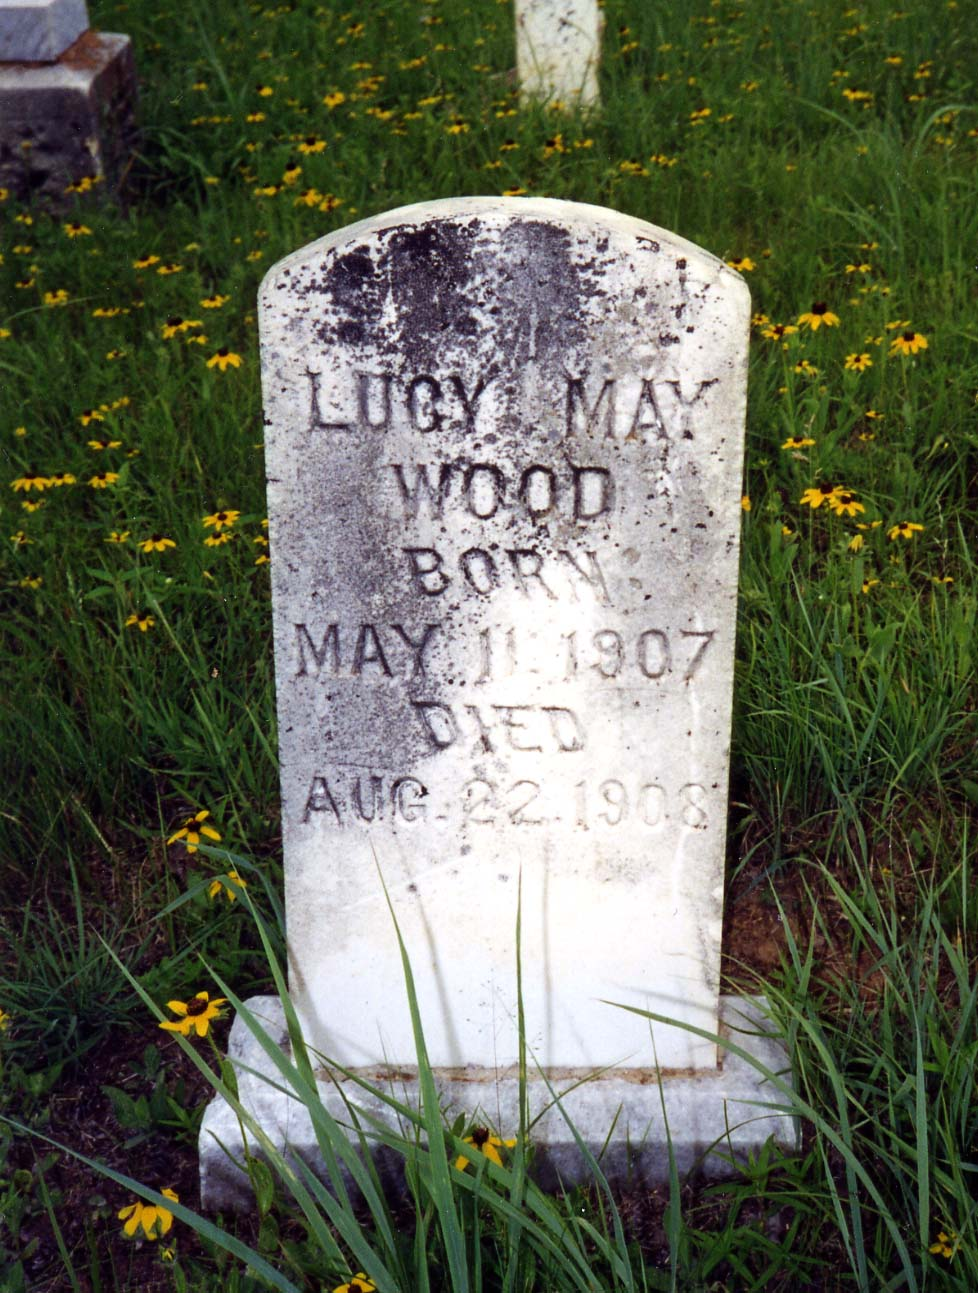 Lucy Mae Wood  Born May 11, 1907   Died Aug 22, 1908